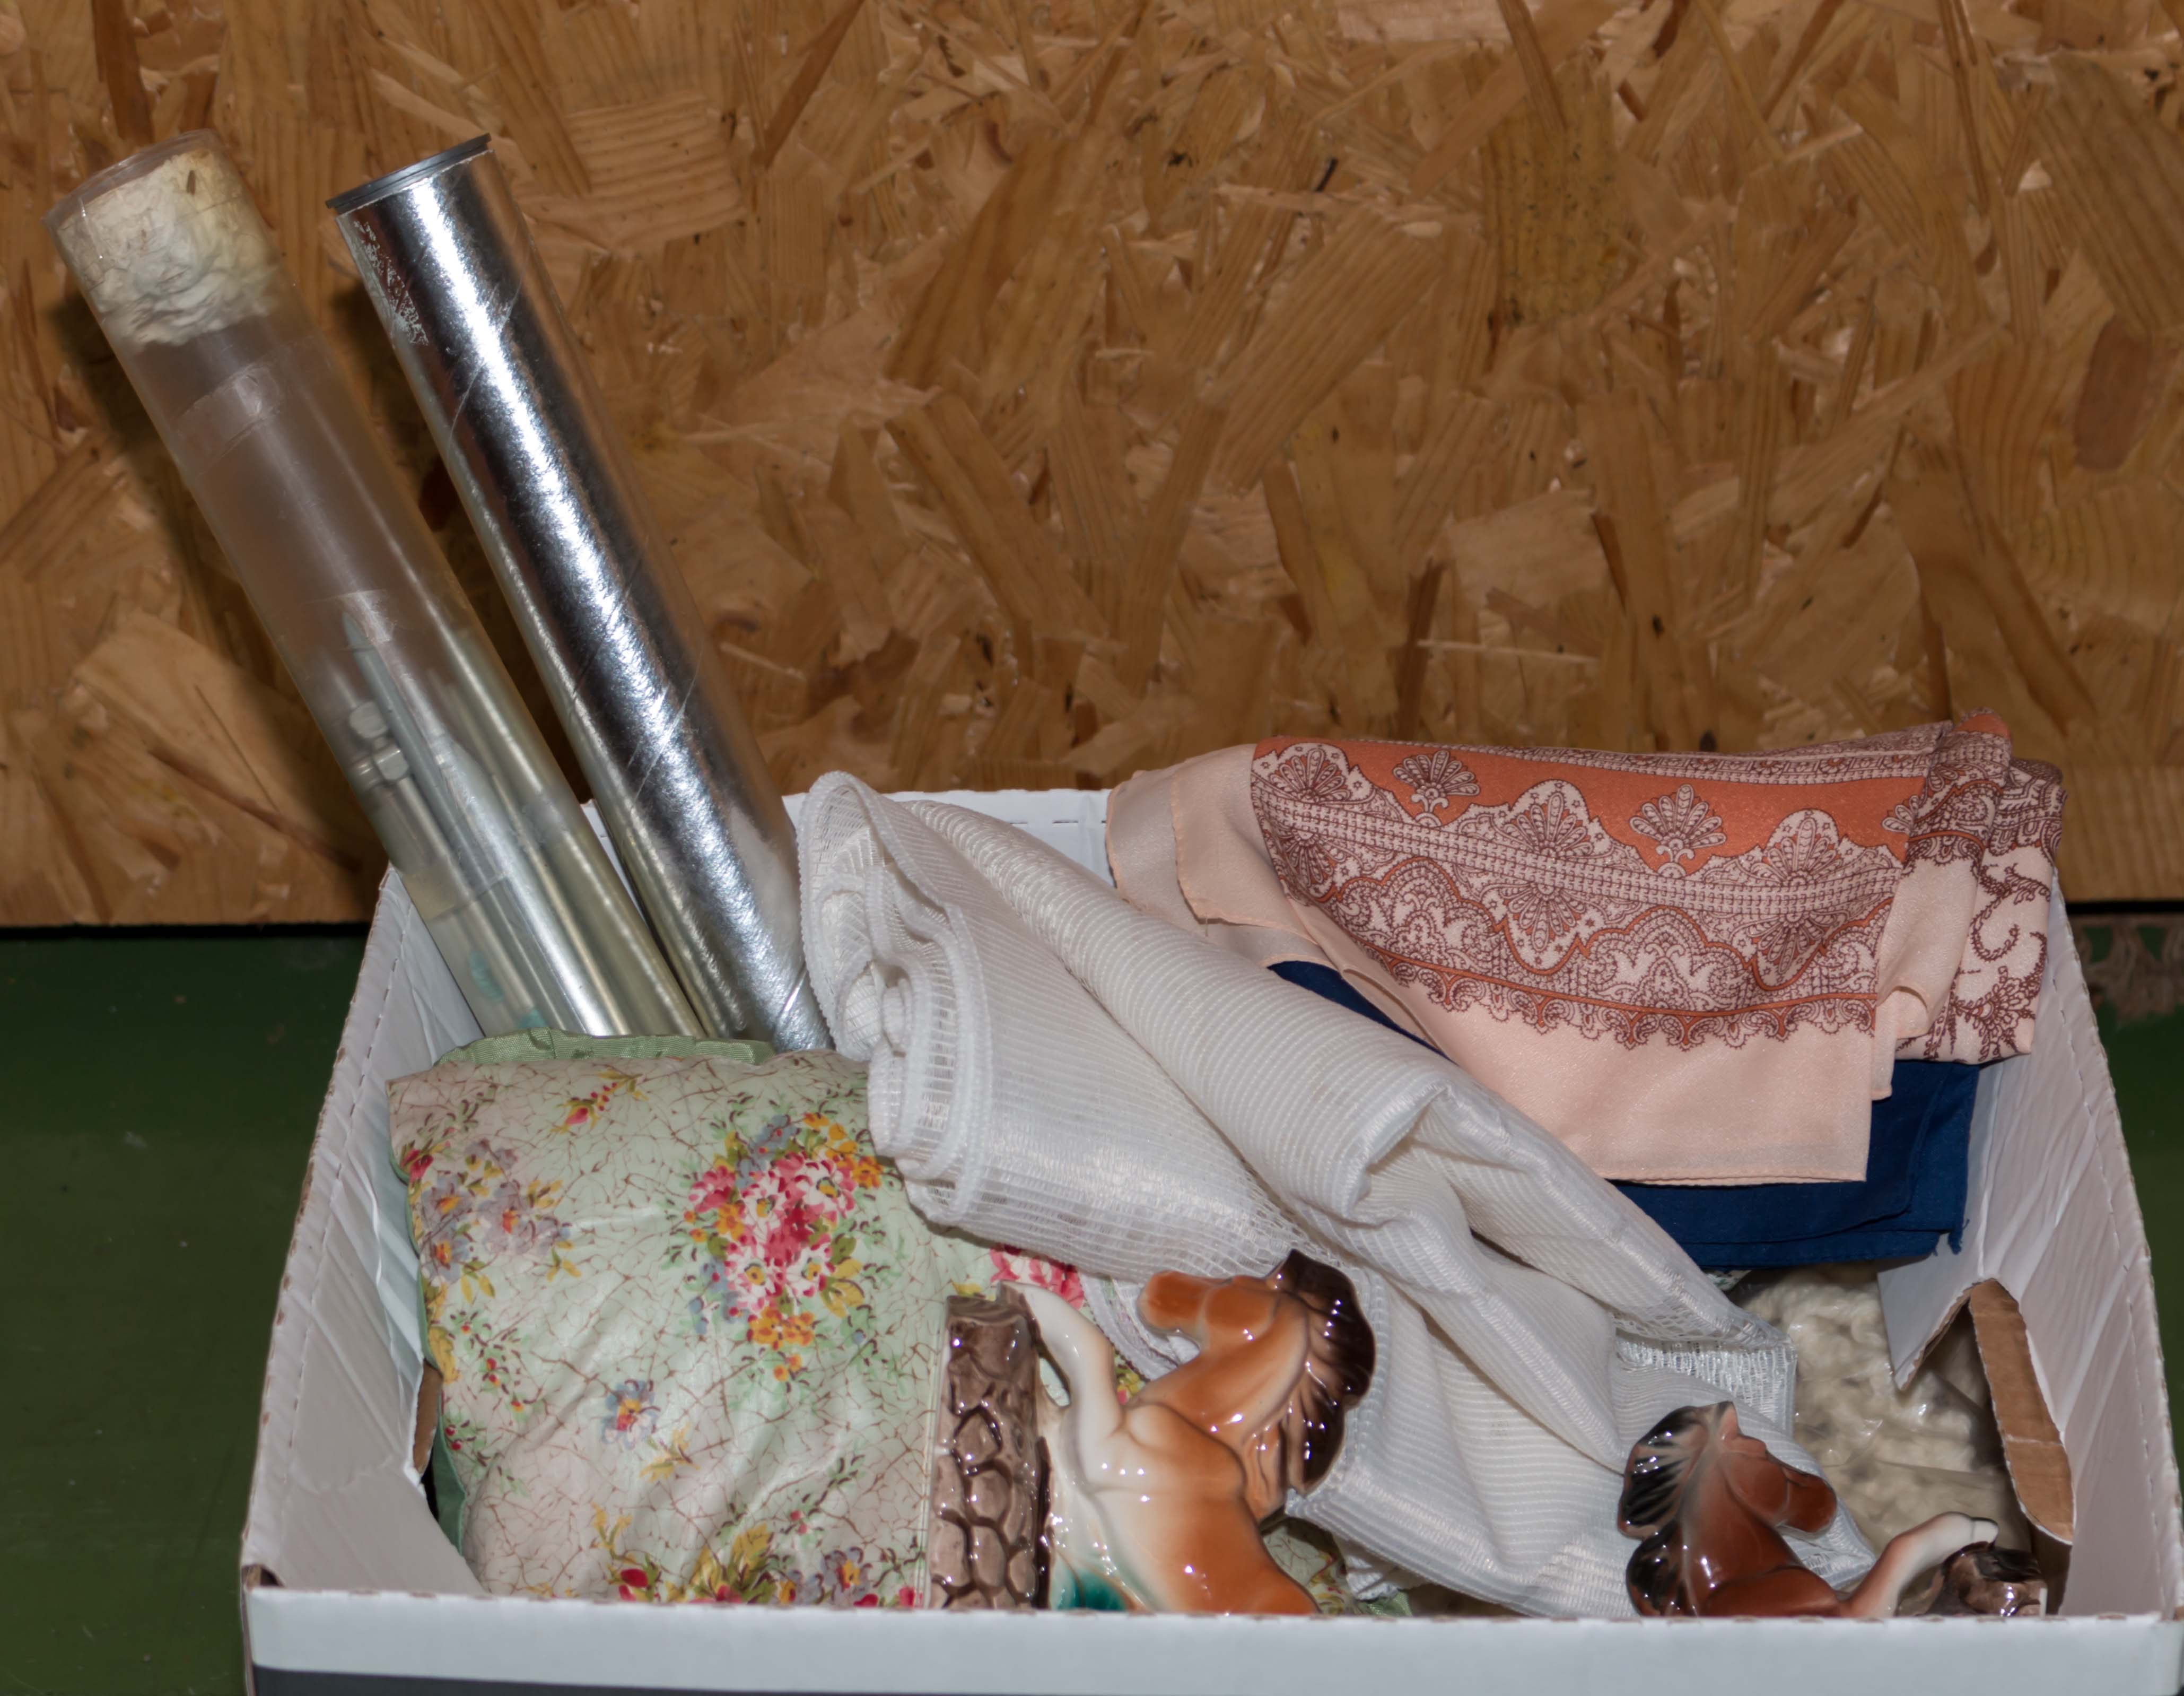 Lot 48 - A box containing fabric and scarves